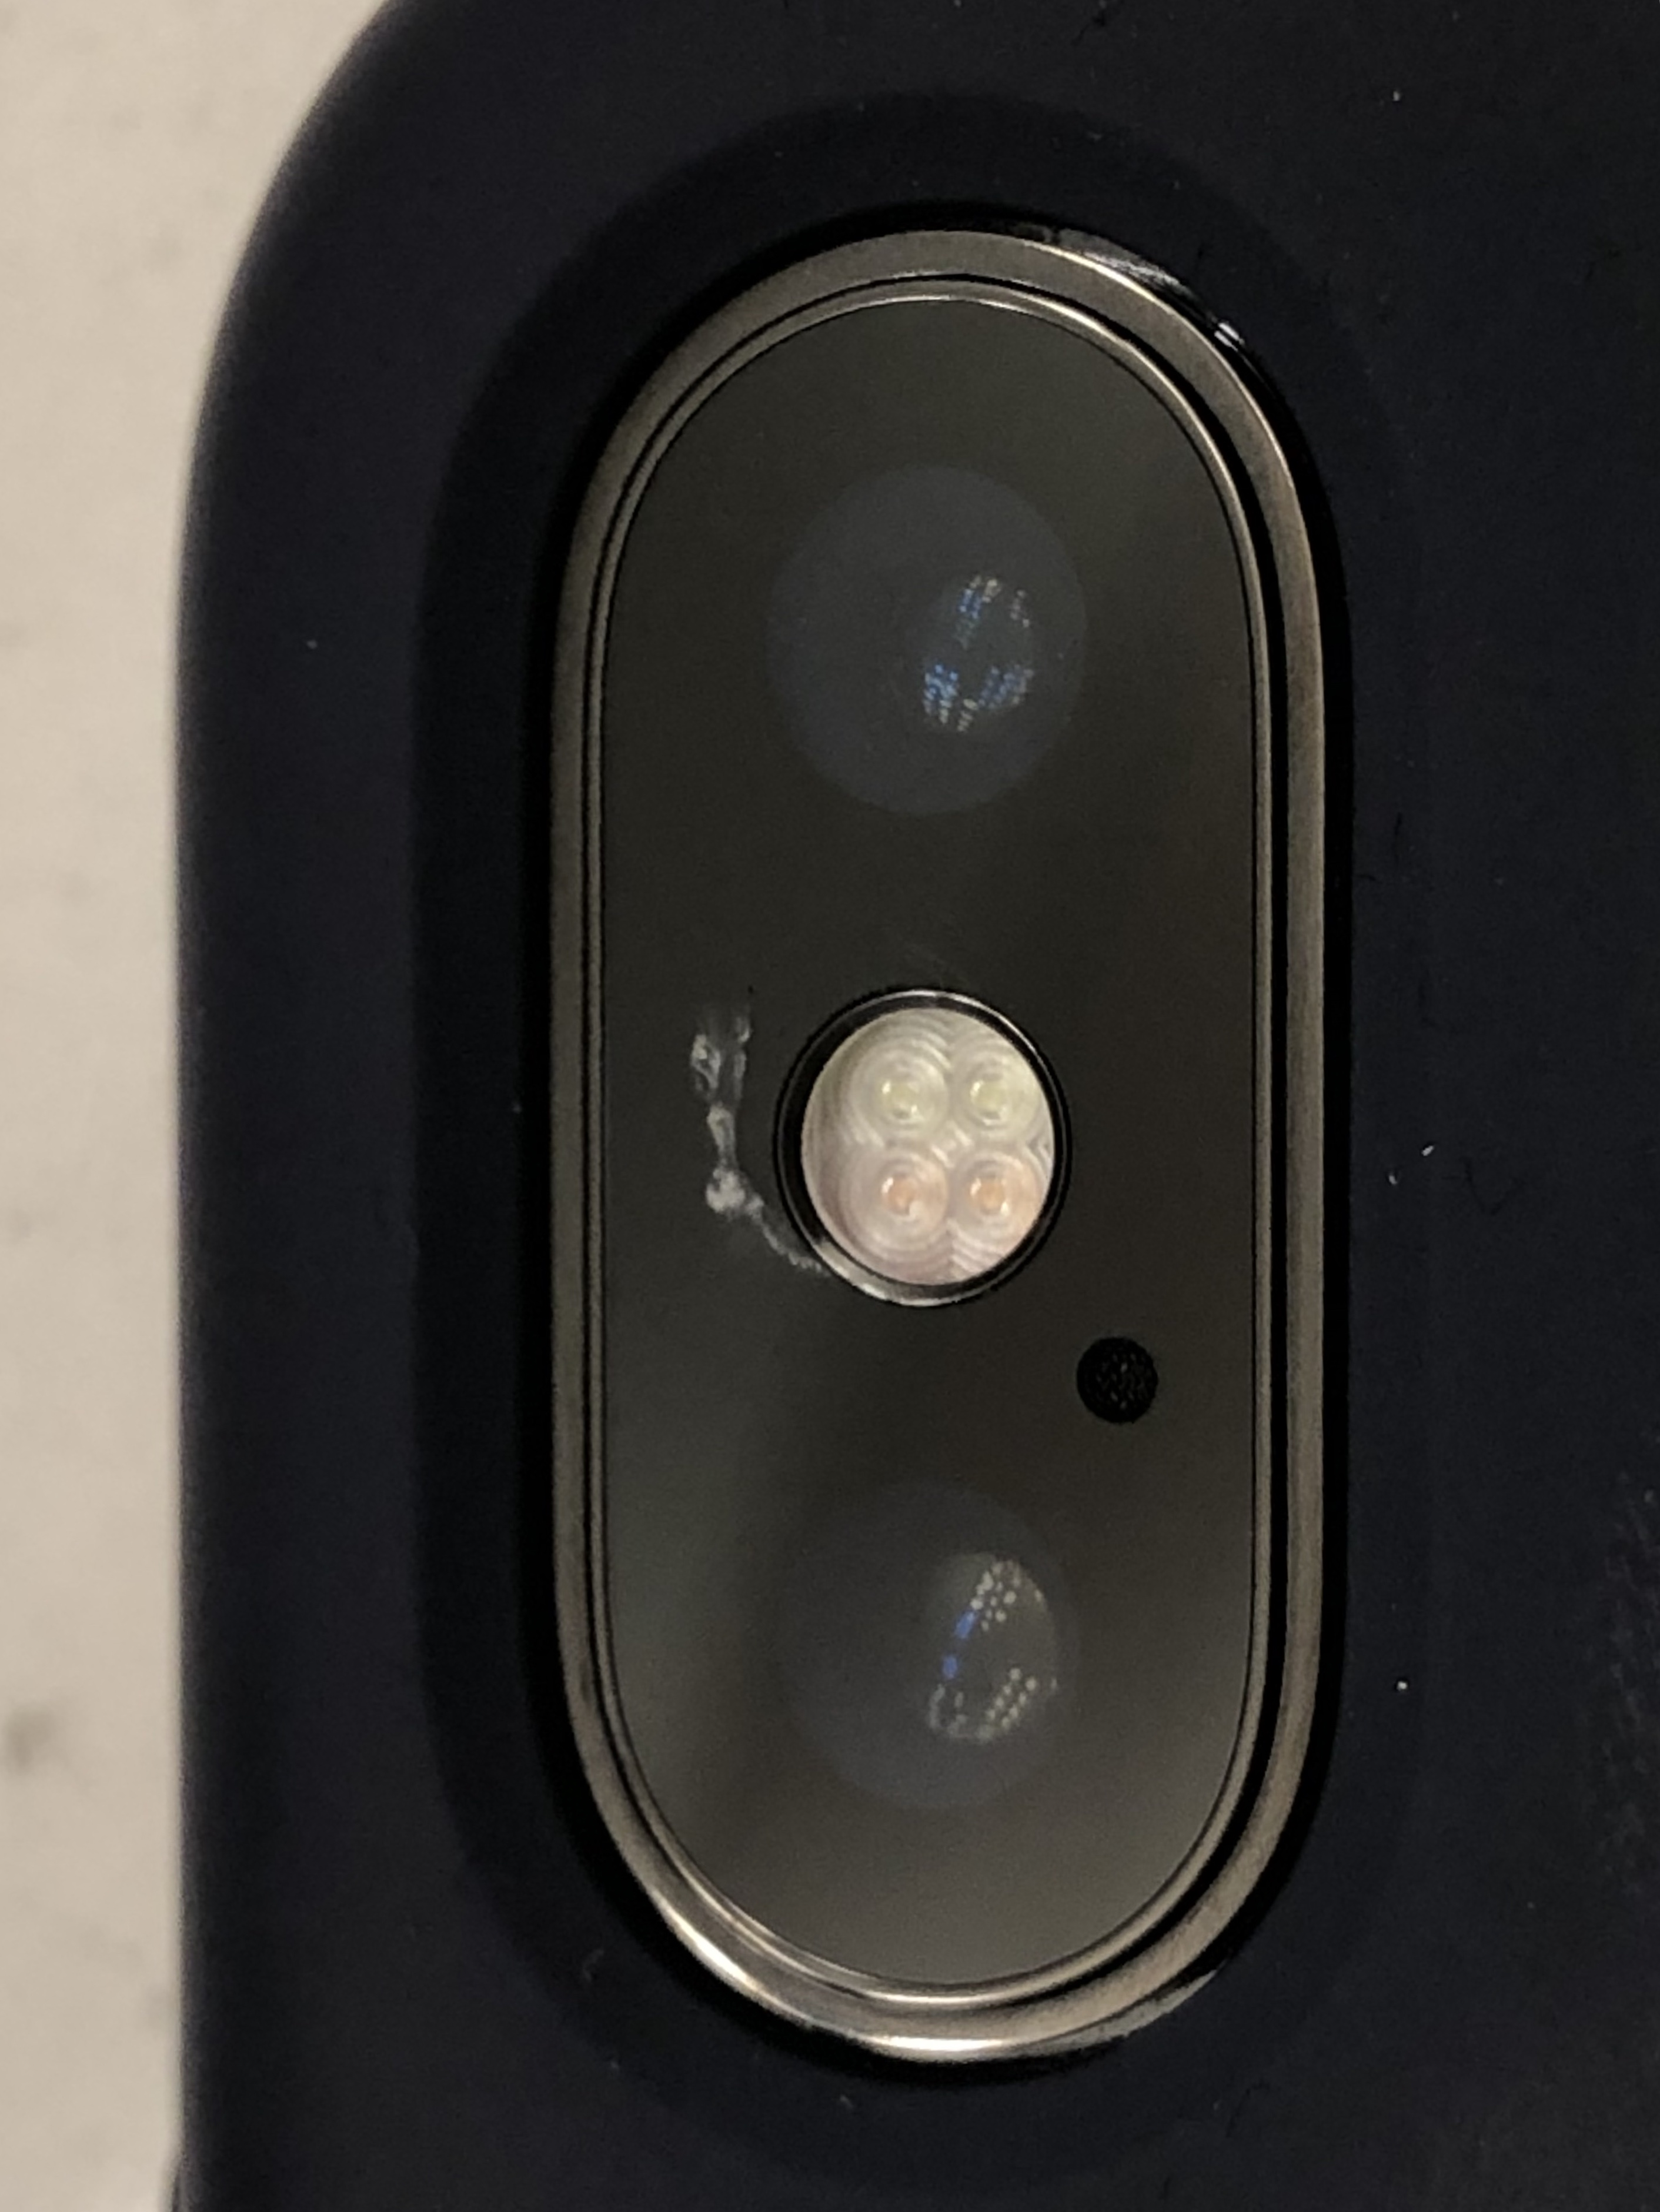 reputable site 0486d 72f6a Cold weather cracked iPhone X camera lens - Apple Community